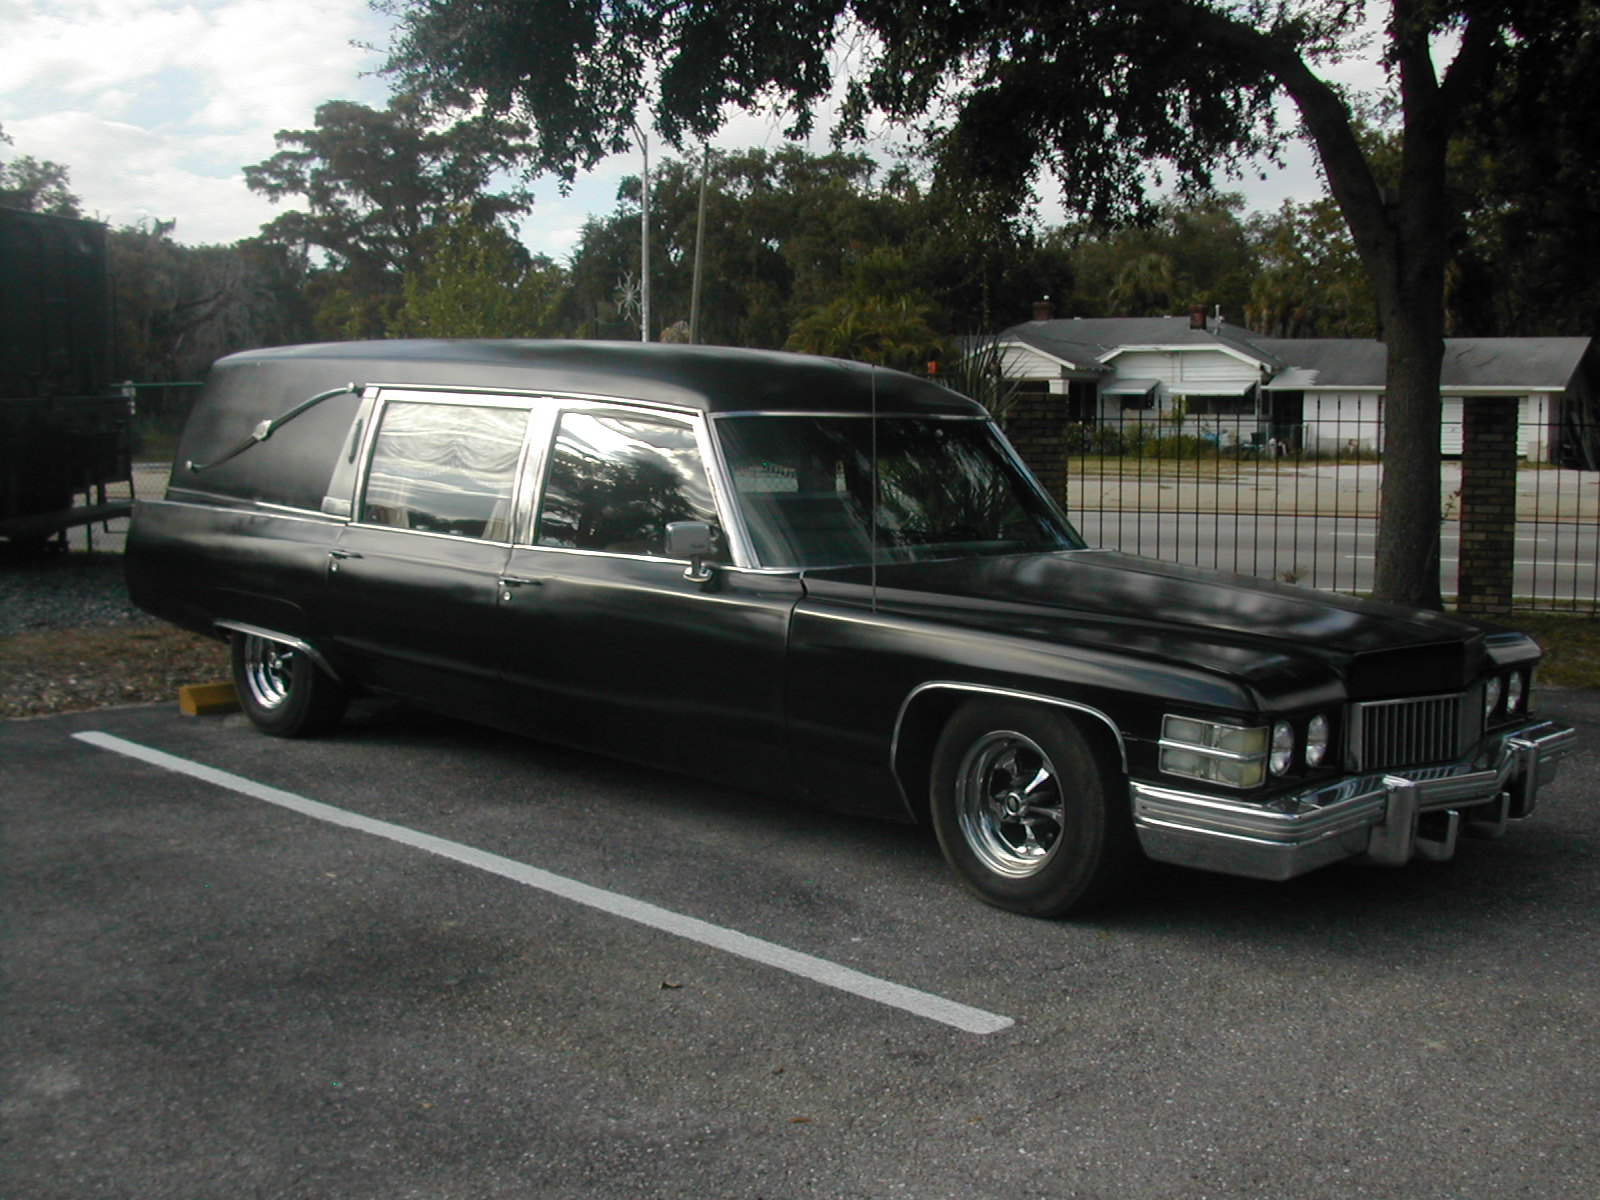 This is a 1974 Cadillac Hearse with a lowered suspension, Edelbrock intake